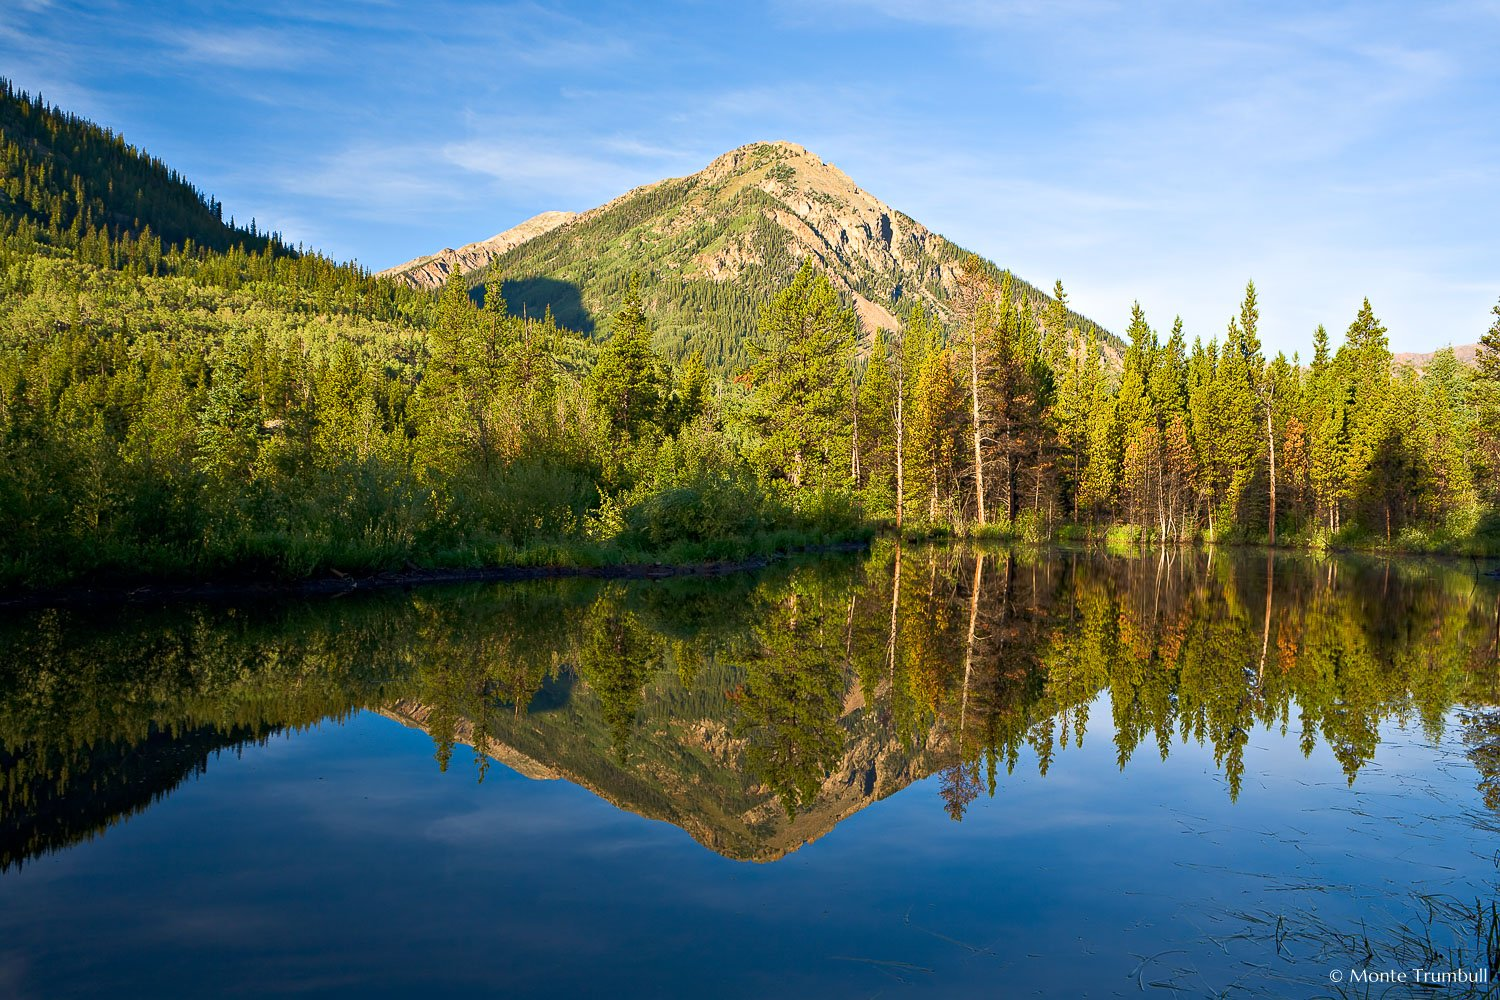 MT-20070724-065513-0002-Edit-Colorado-Clear-Creek-Canyon-beaver-pond-reflection-sunrise.jpg